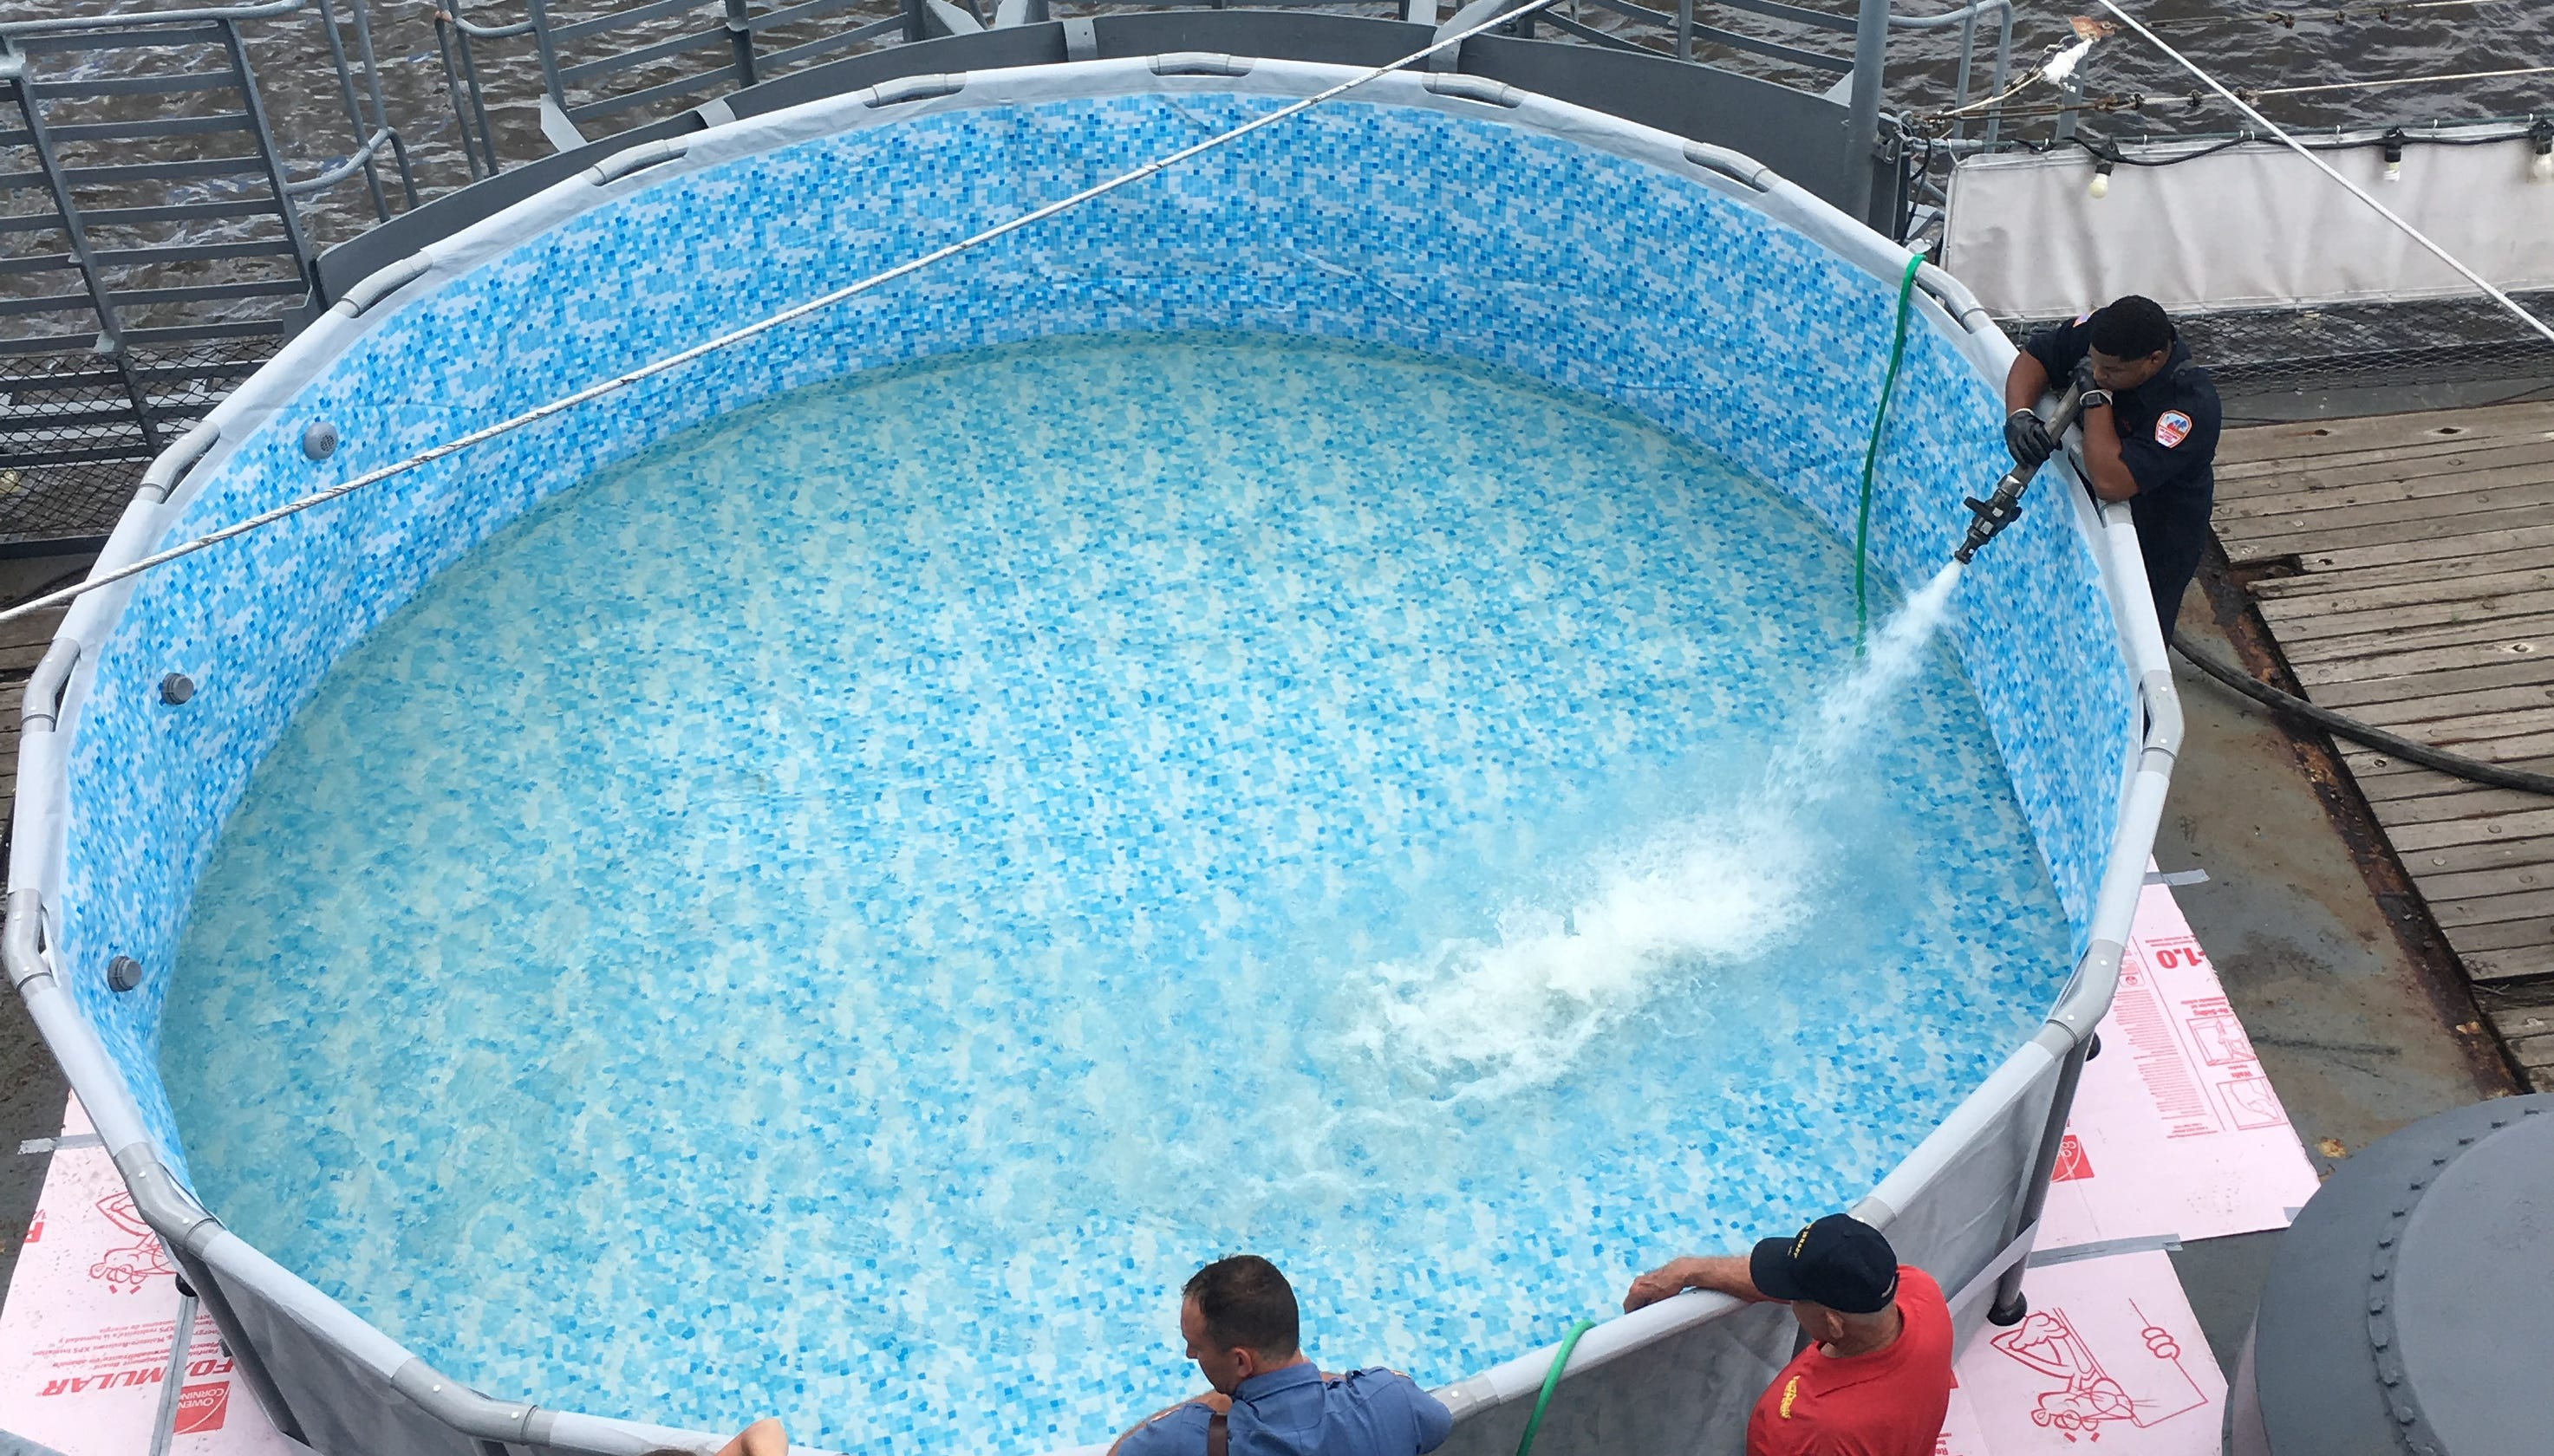 Take a dip in the battleship New Jersey pool on a museum tour.